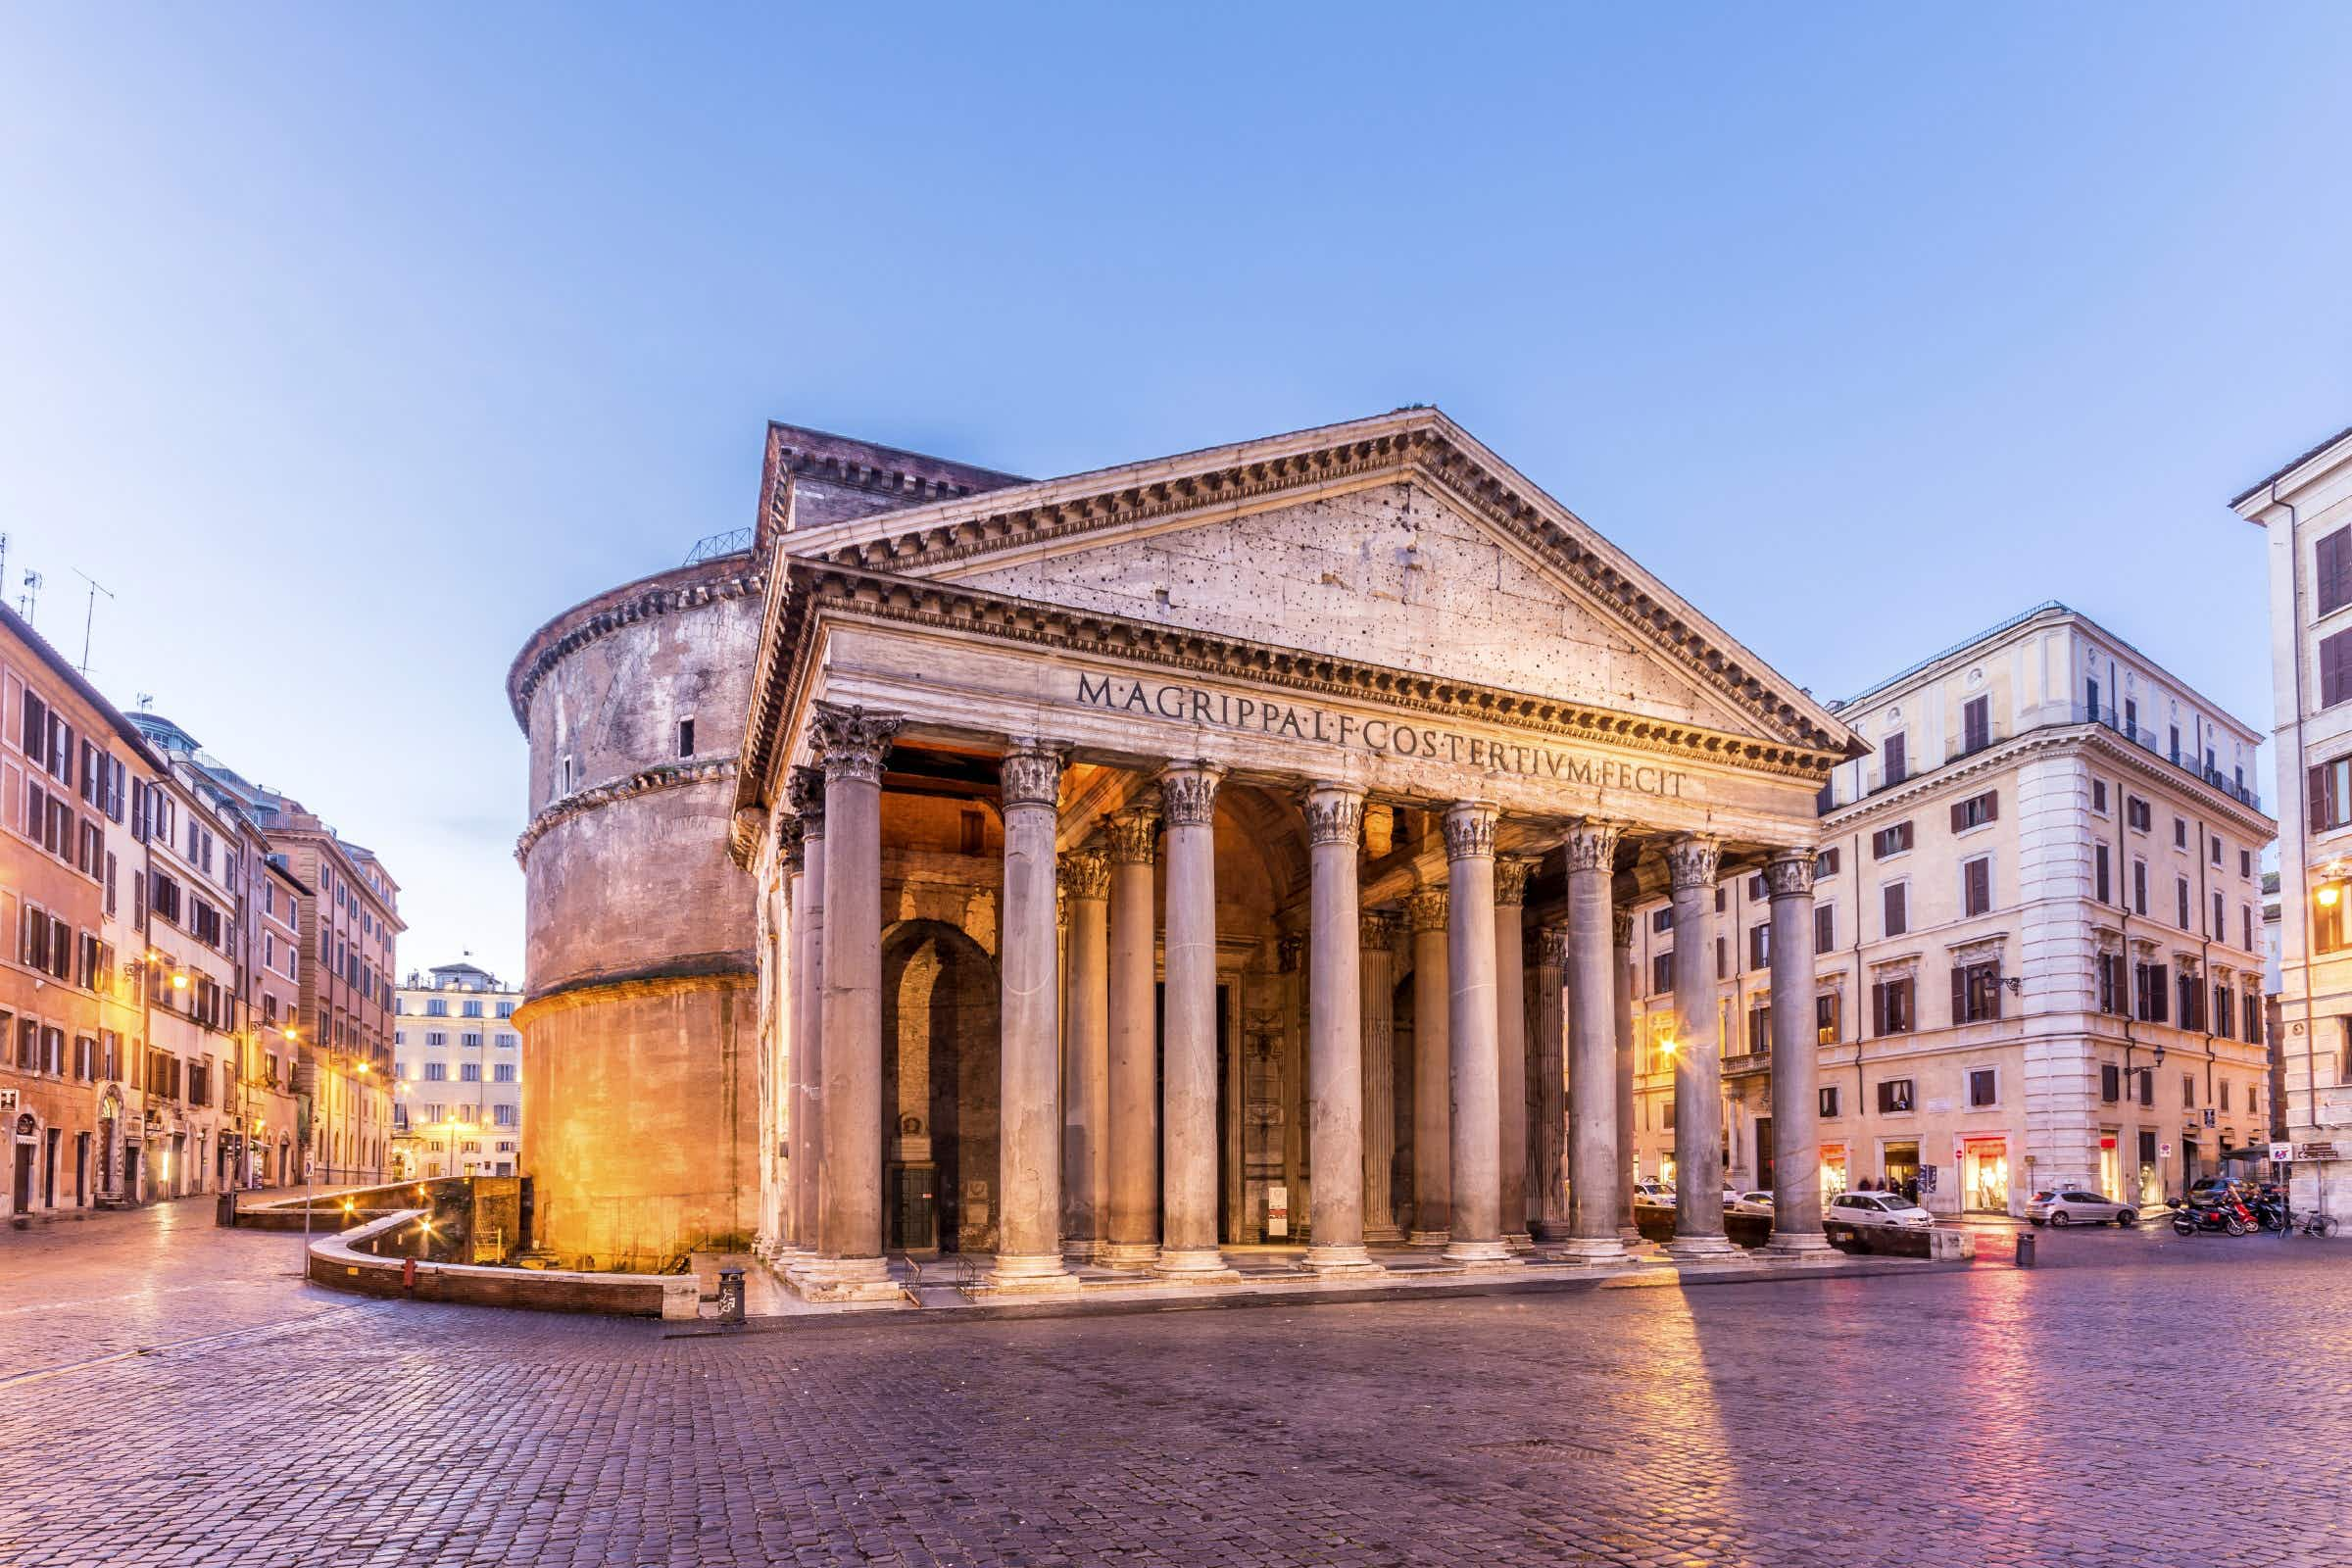 You will soon have to pay a small fee to see the beauty of Rome's Pantheon